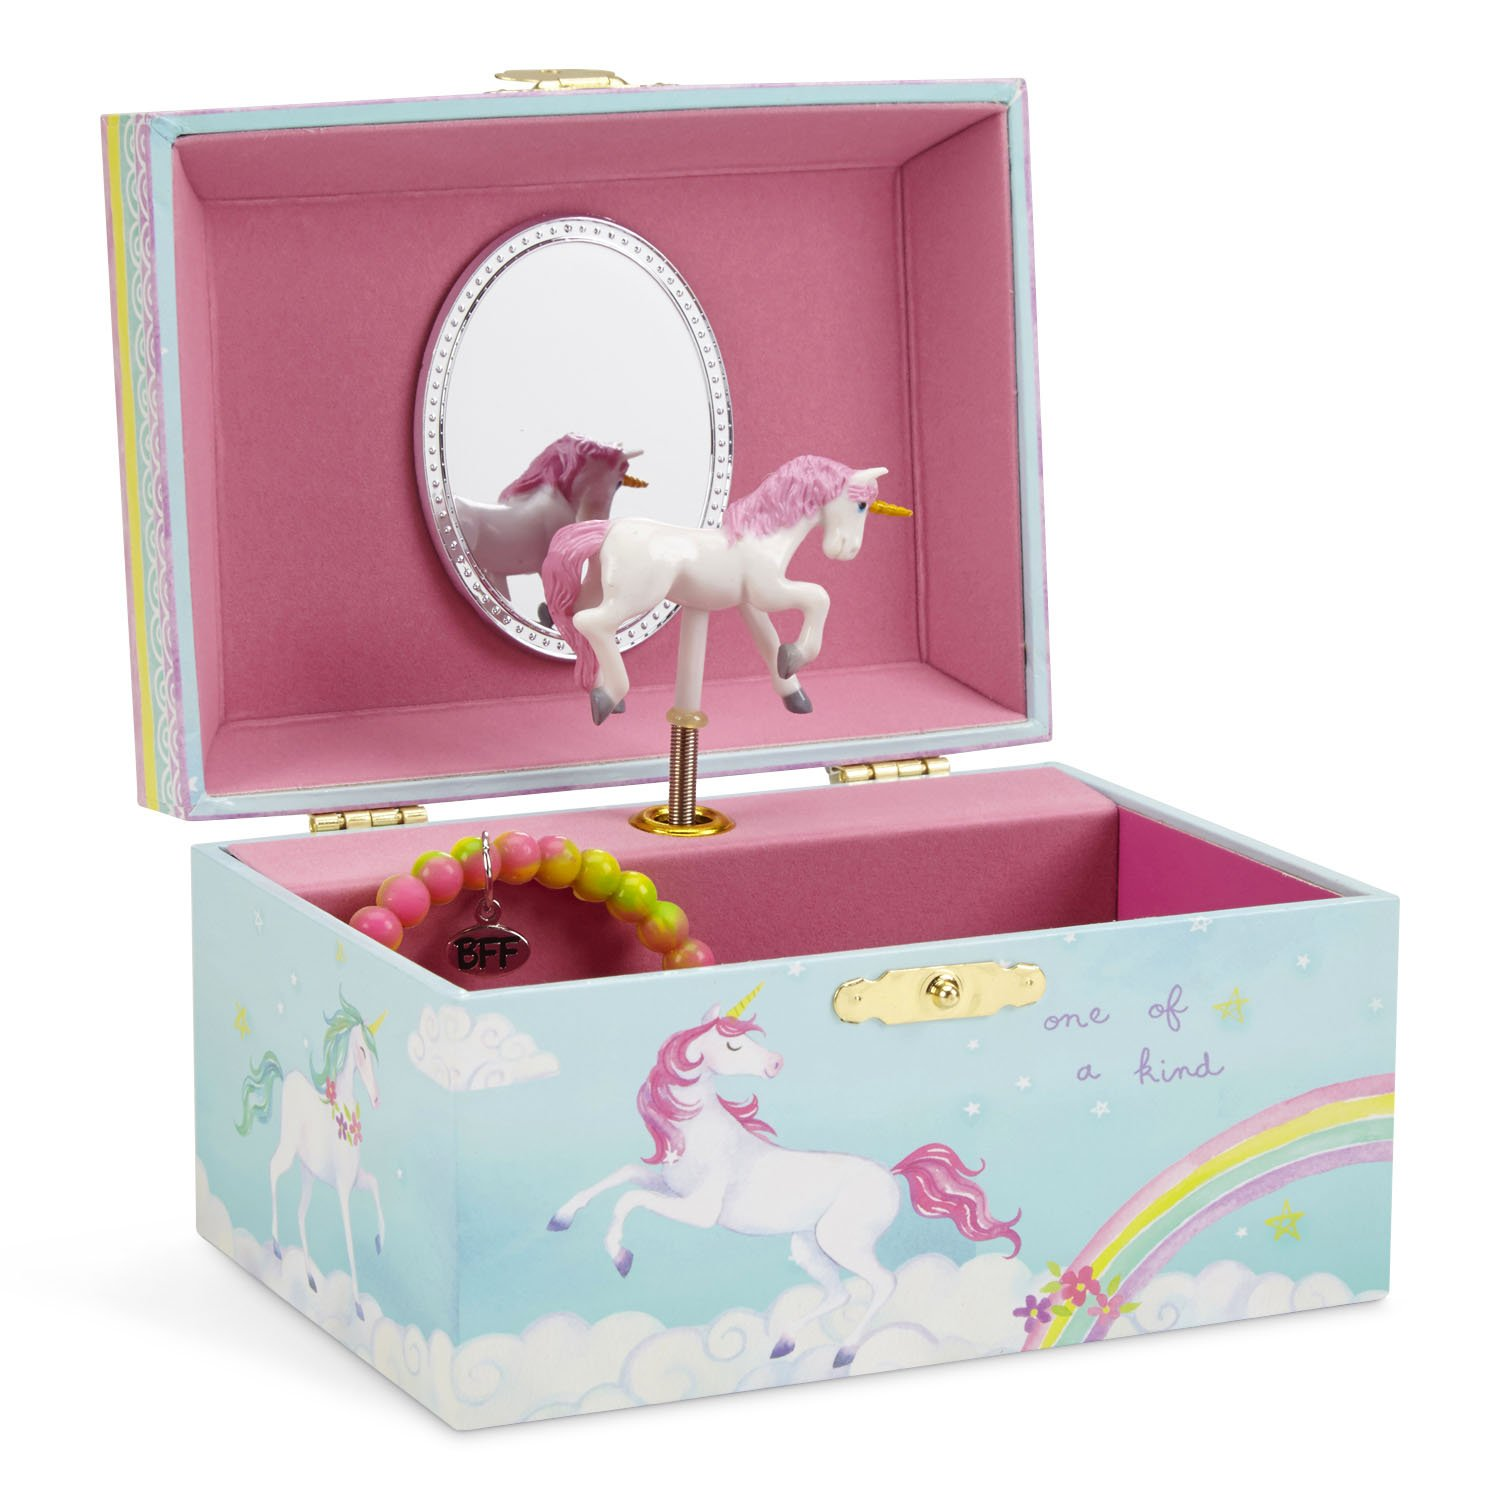 JewelKeeper Girl's Musical Jewelry Storage Box with Spinning Unicorn, Rainbow Design, Somewhere Over the Rainbow Tune